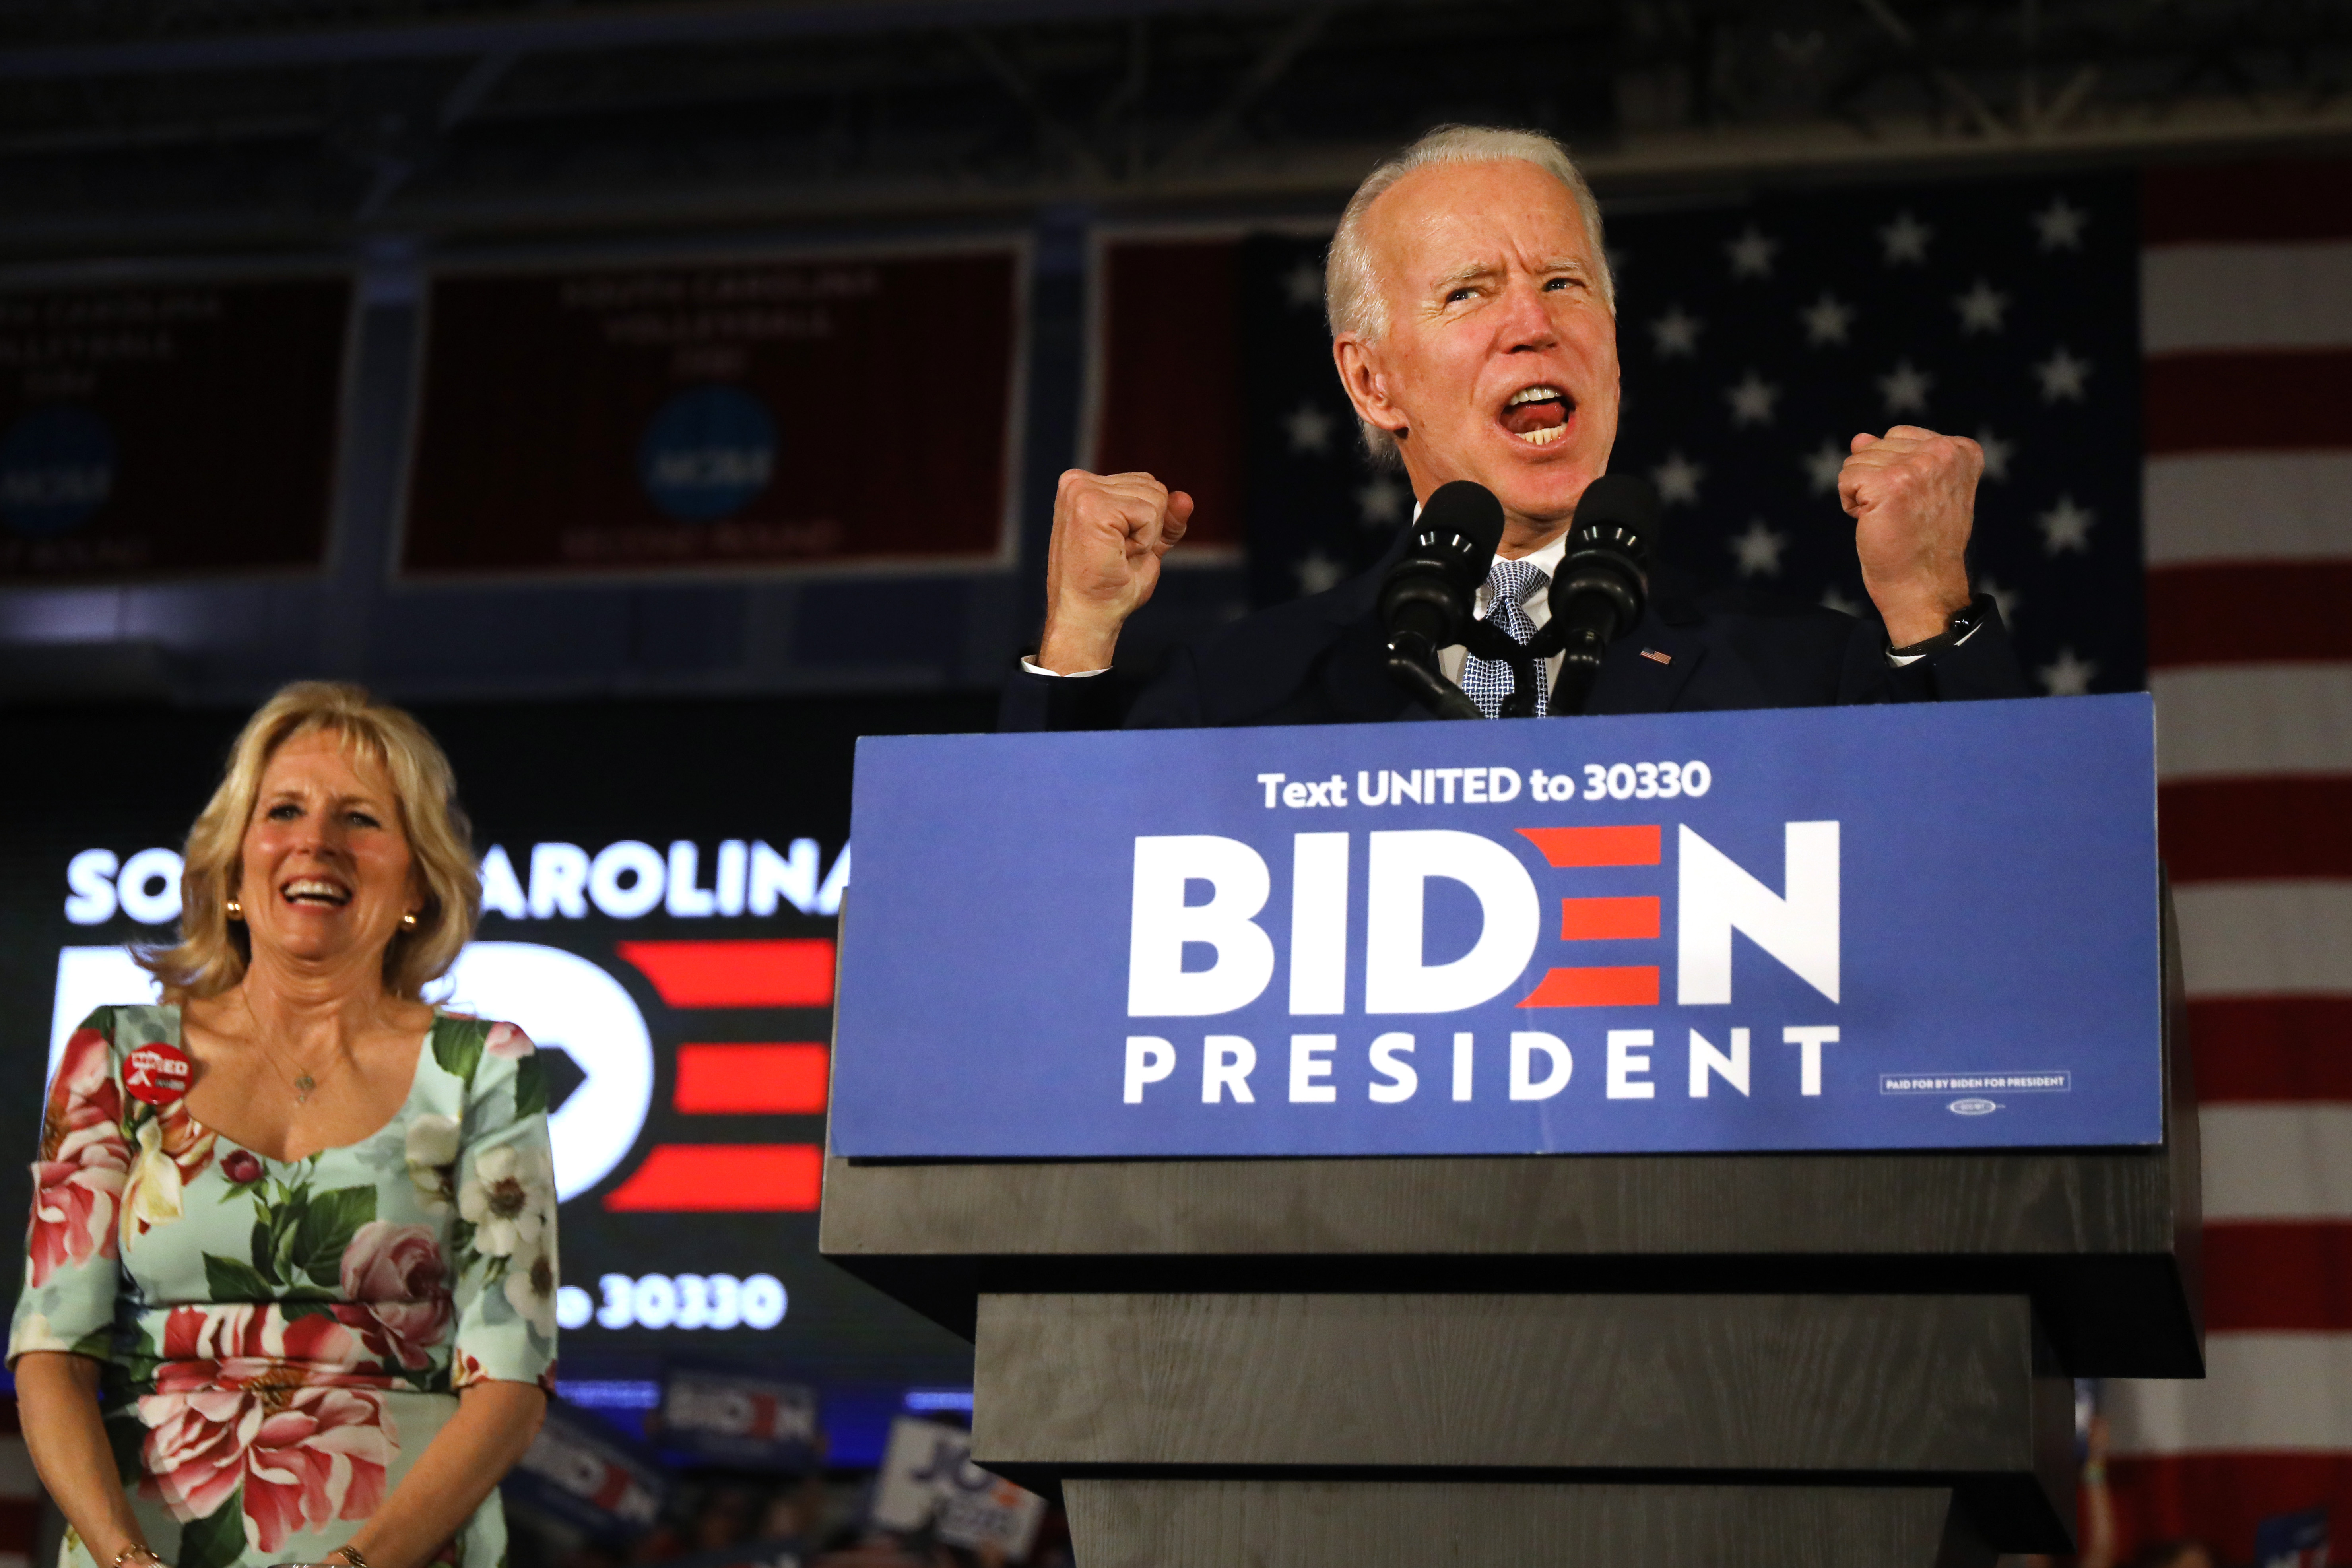 COLUMBIA, SOUTH CAROLINA - FEBRUARY 29: Democratic presidential candidate former Vice President Joe Biden reacts on stage with his wife Jill Biden after declaring victory in the South Carolina presidential primary on February 29, 2020 in Columbia, South Carolina. South Carolina is the first-in-the-south primary and the fourth state in the presidential nominating process. (Photo by Spencer Platt/Getty Images)